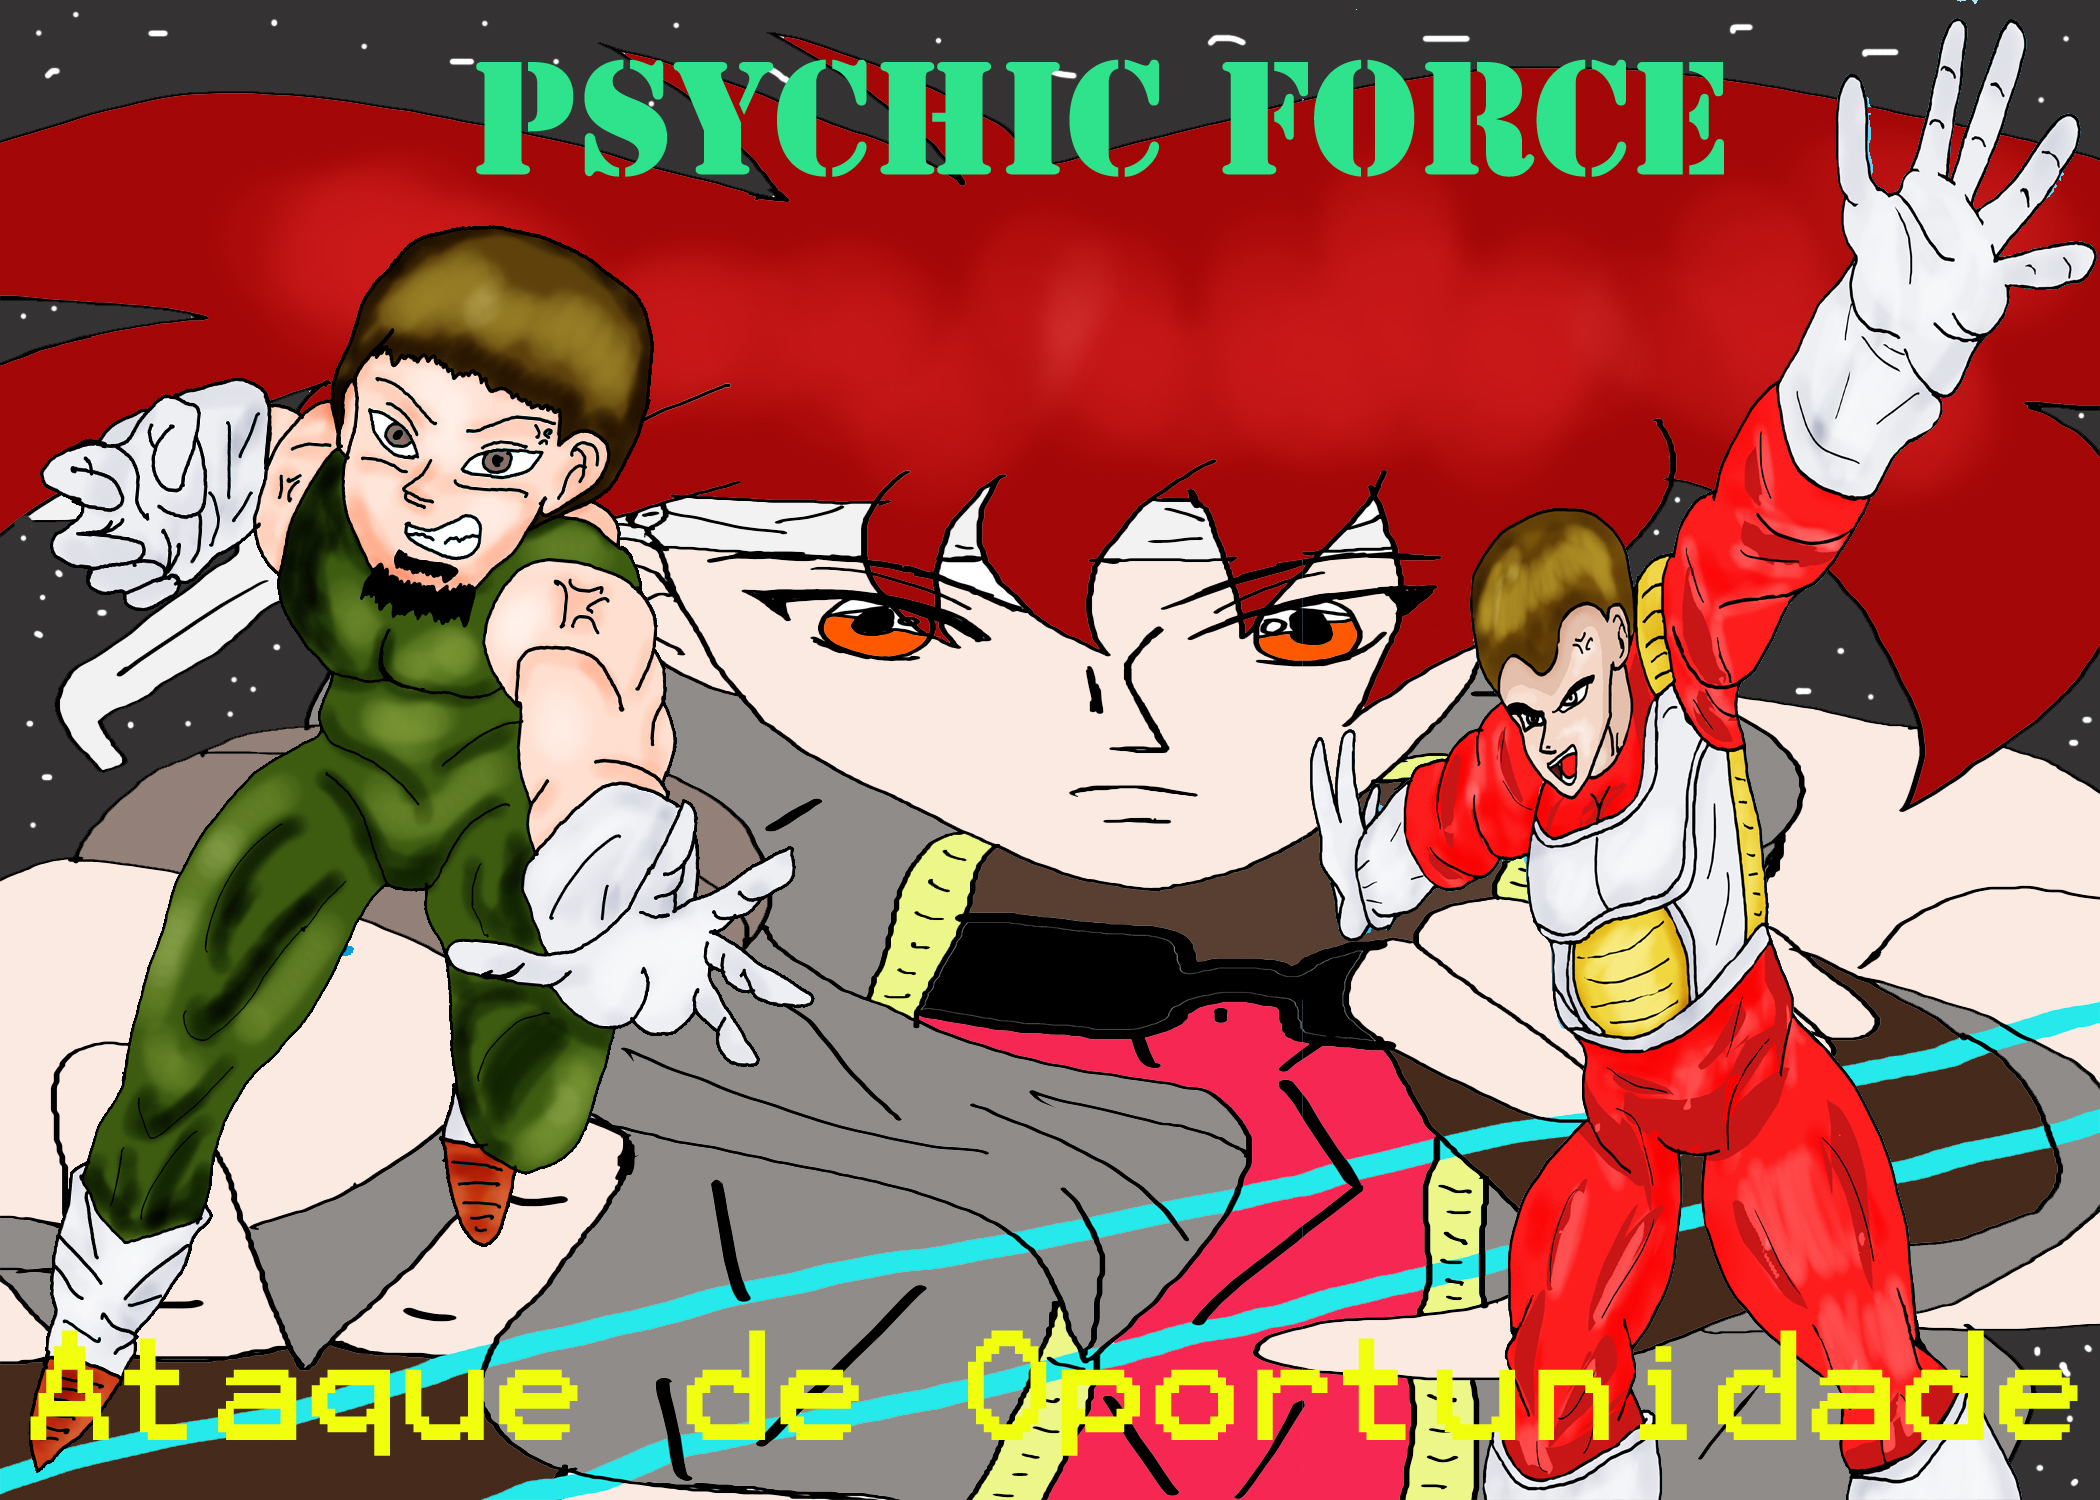 Psychic Force at de oportunidade